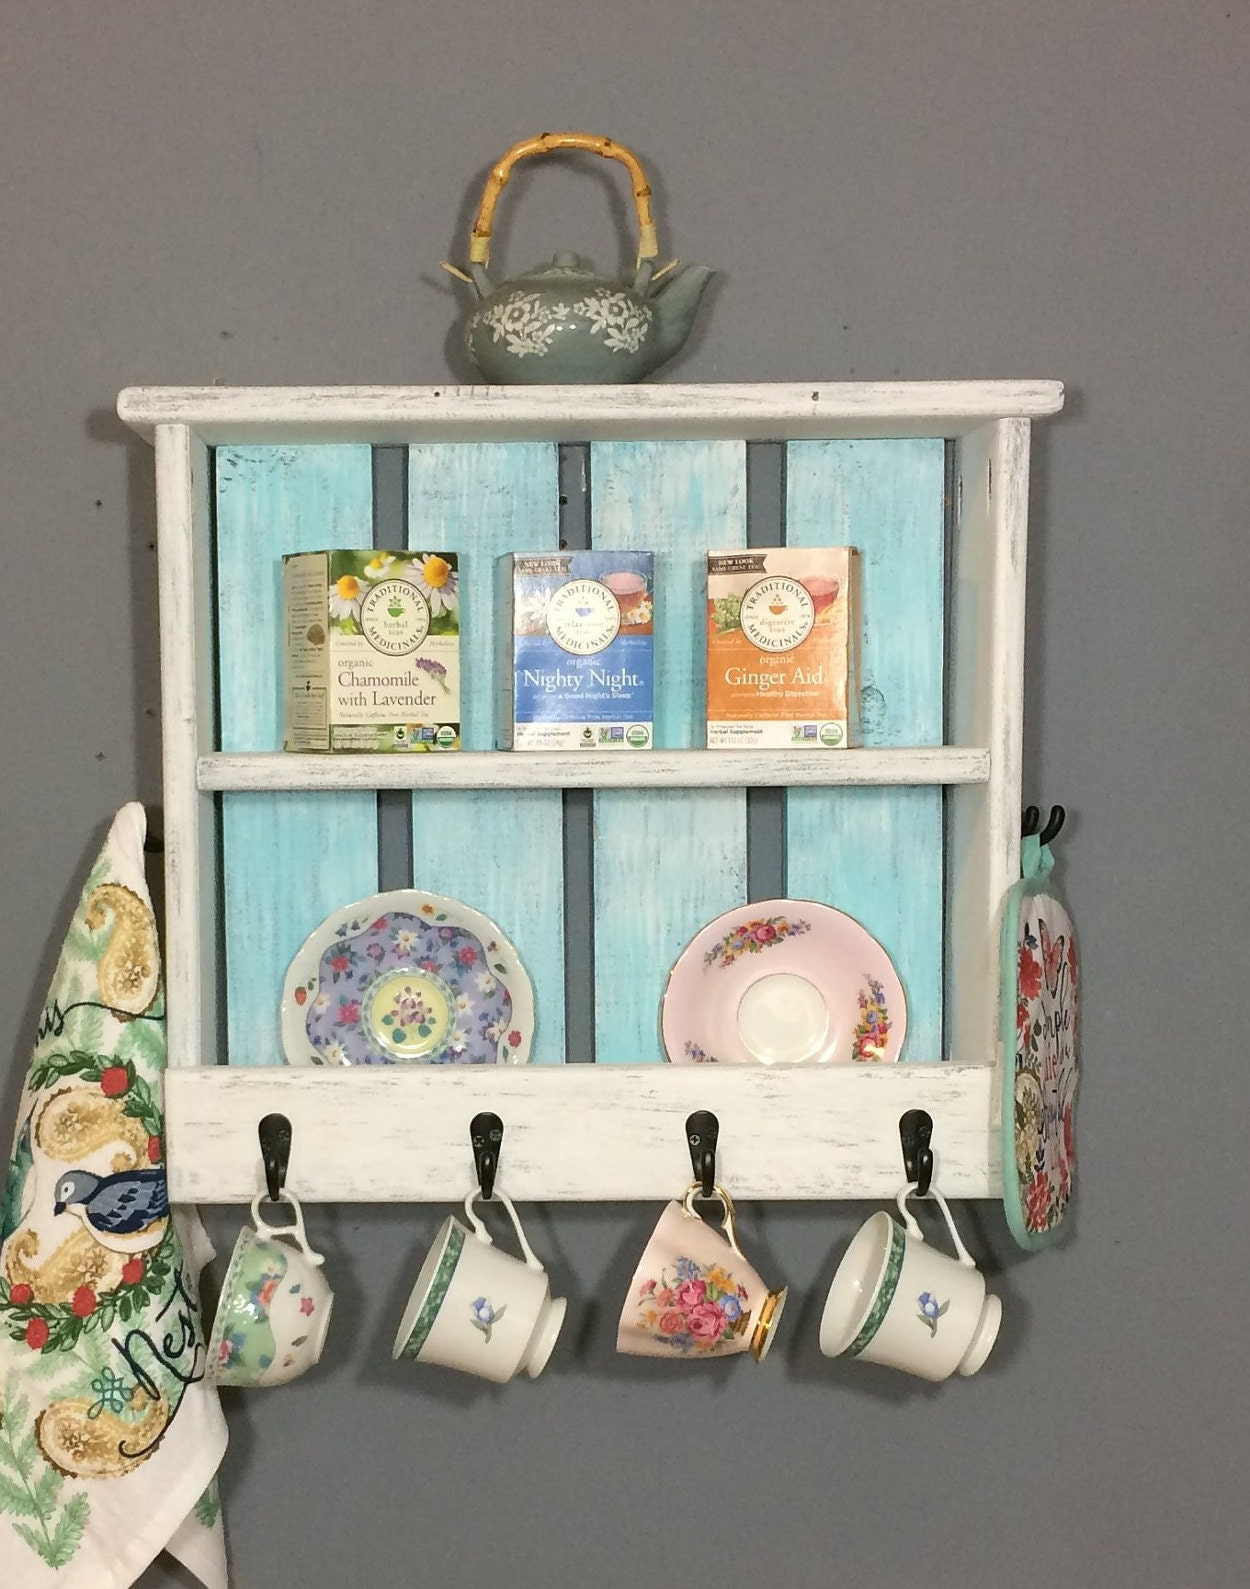 Kitchen Shelf For Hanging Tea Cups And Towels, Wall Coffee Station,  Bathroom Shelves For Towels, Accent Wall Shelf, Rustic White Farmhouse